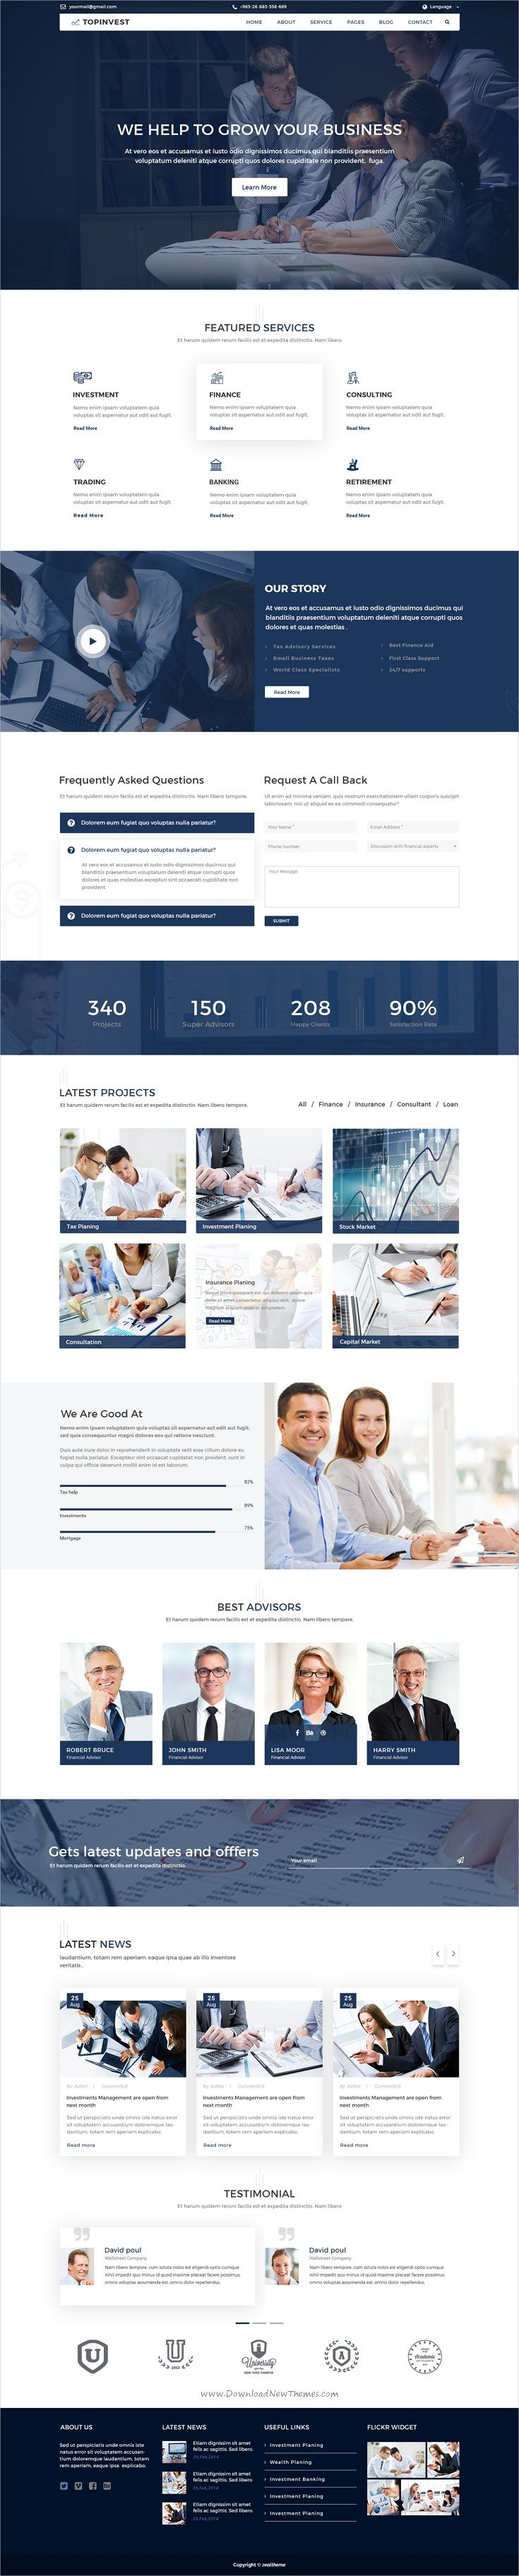 TopInvest is a wonderful #PSD template for #finance, #business and corporate website with 15 layered PSD files download now➩ https://themeforest.net/item/topinvest-business-finance-psd-template/19711604?ref=Datasata